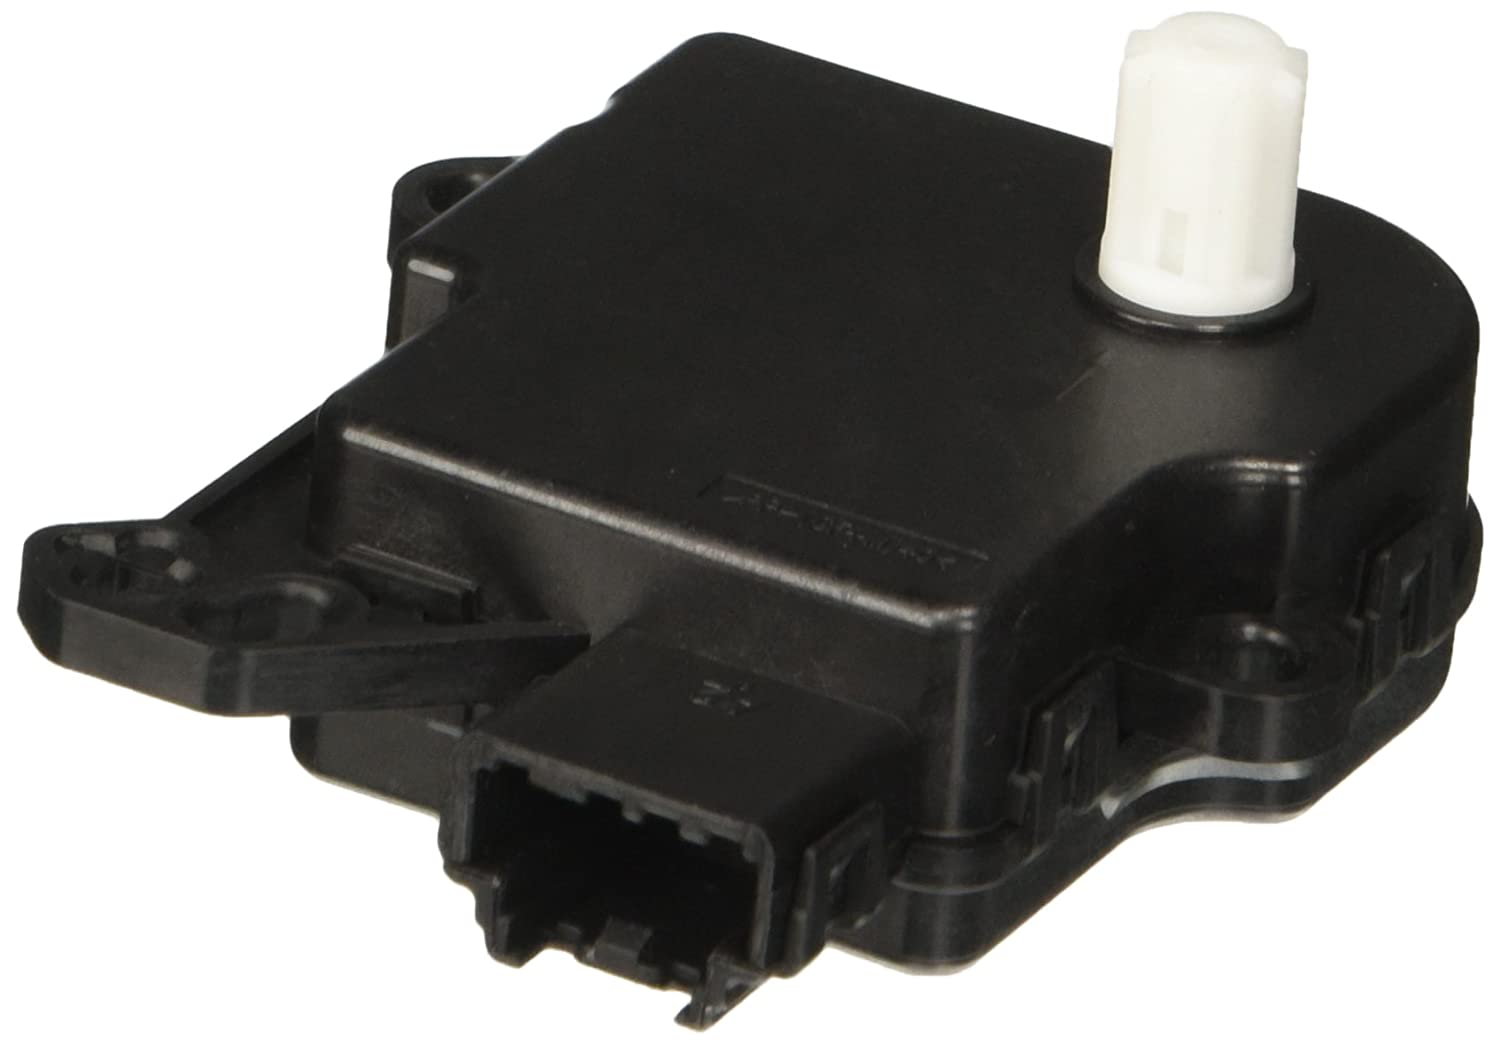 Motorcraft YH-1801 Blend Door Actuator Motor